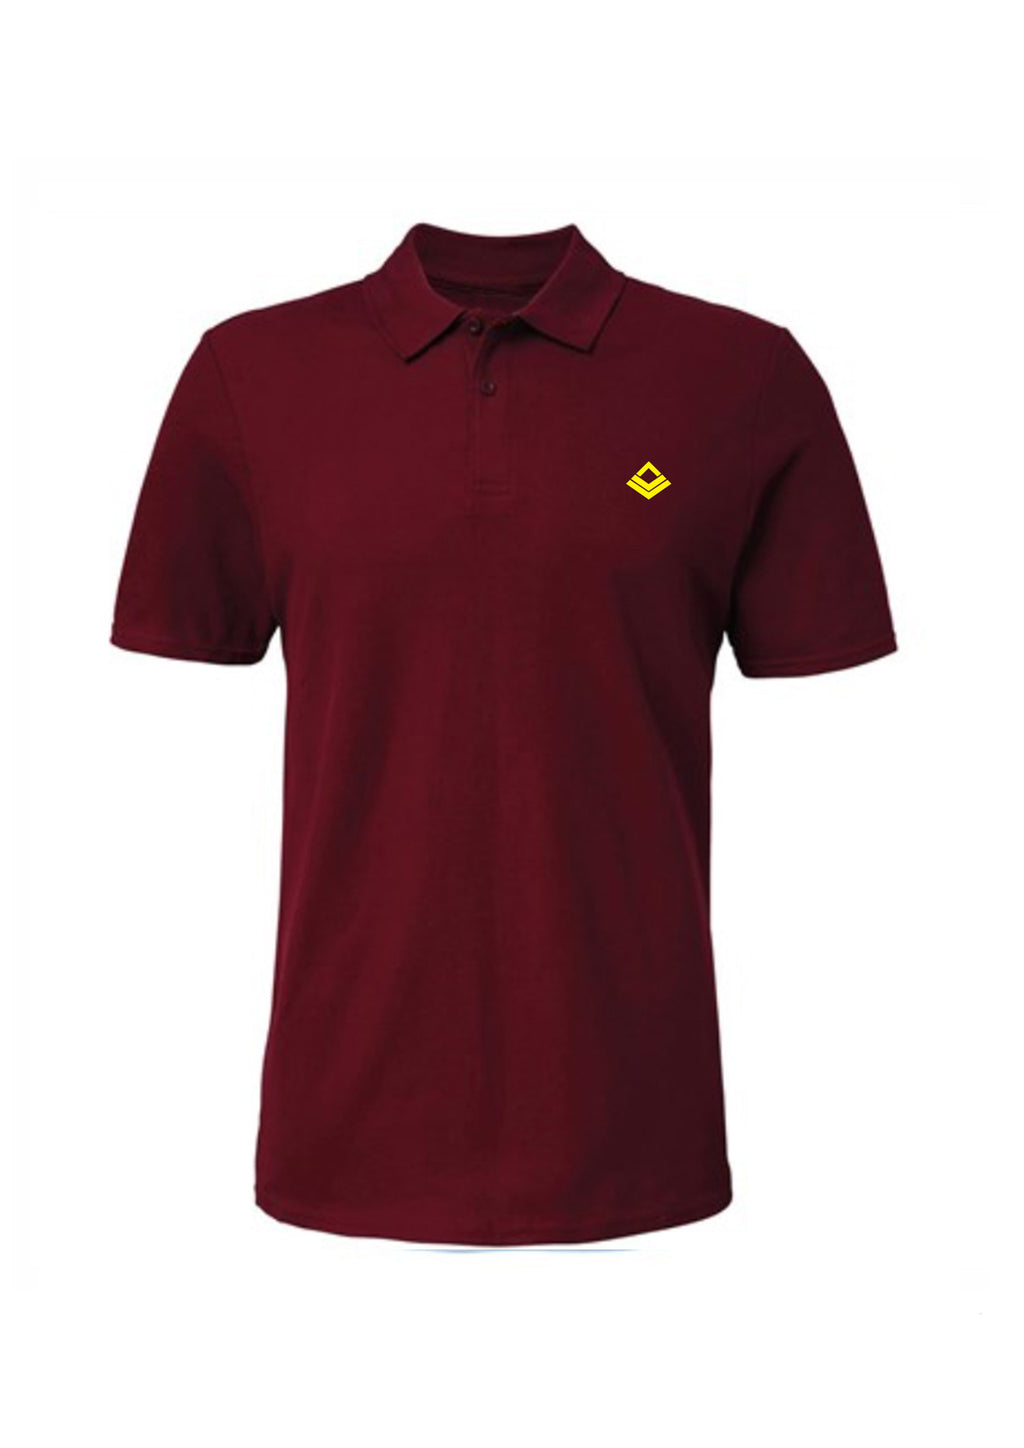 Swaggerlicious Maroon Simple Polo Shirt with Yellow Logo